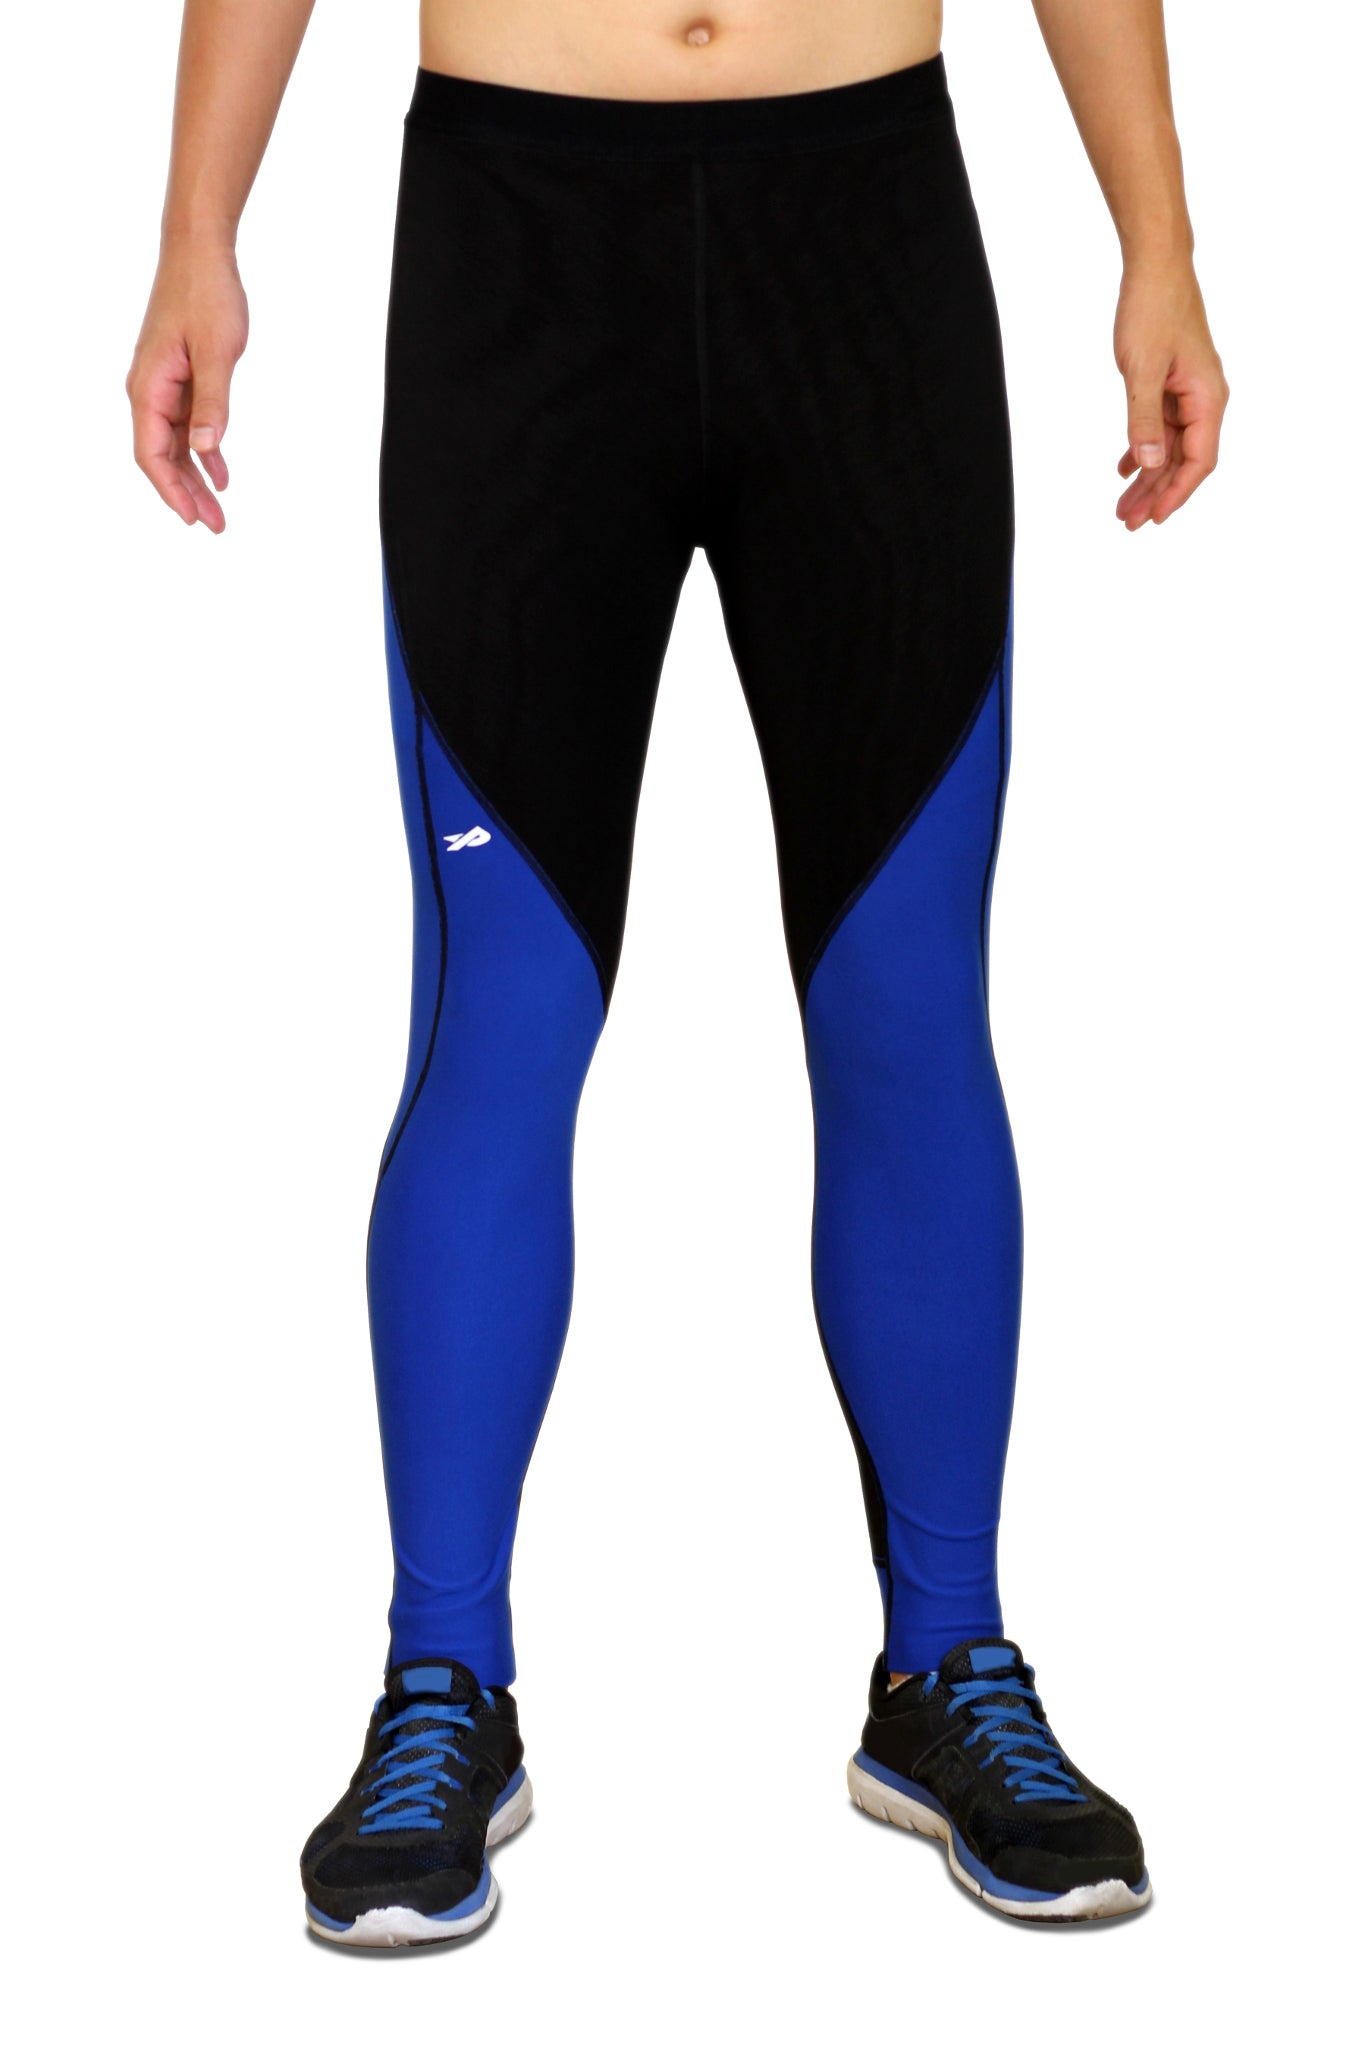 023744d240d Pro Resistance Tights for Men - Navy Blue – Physiclo